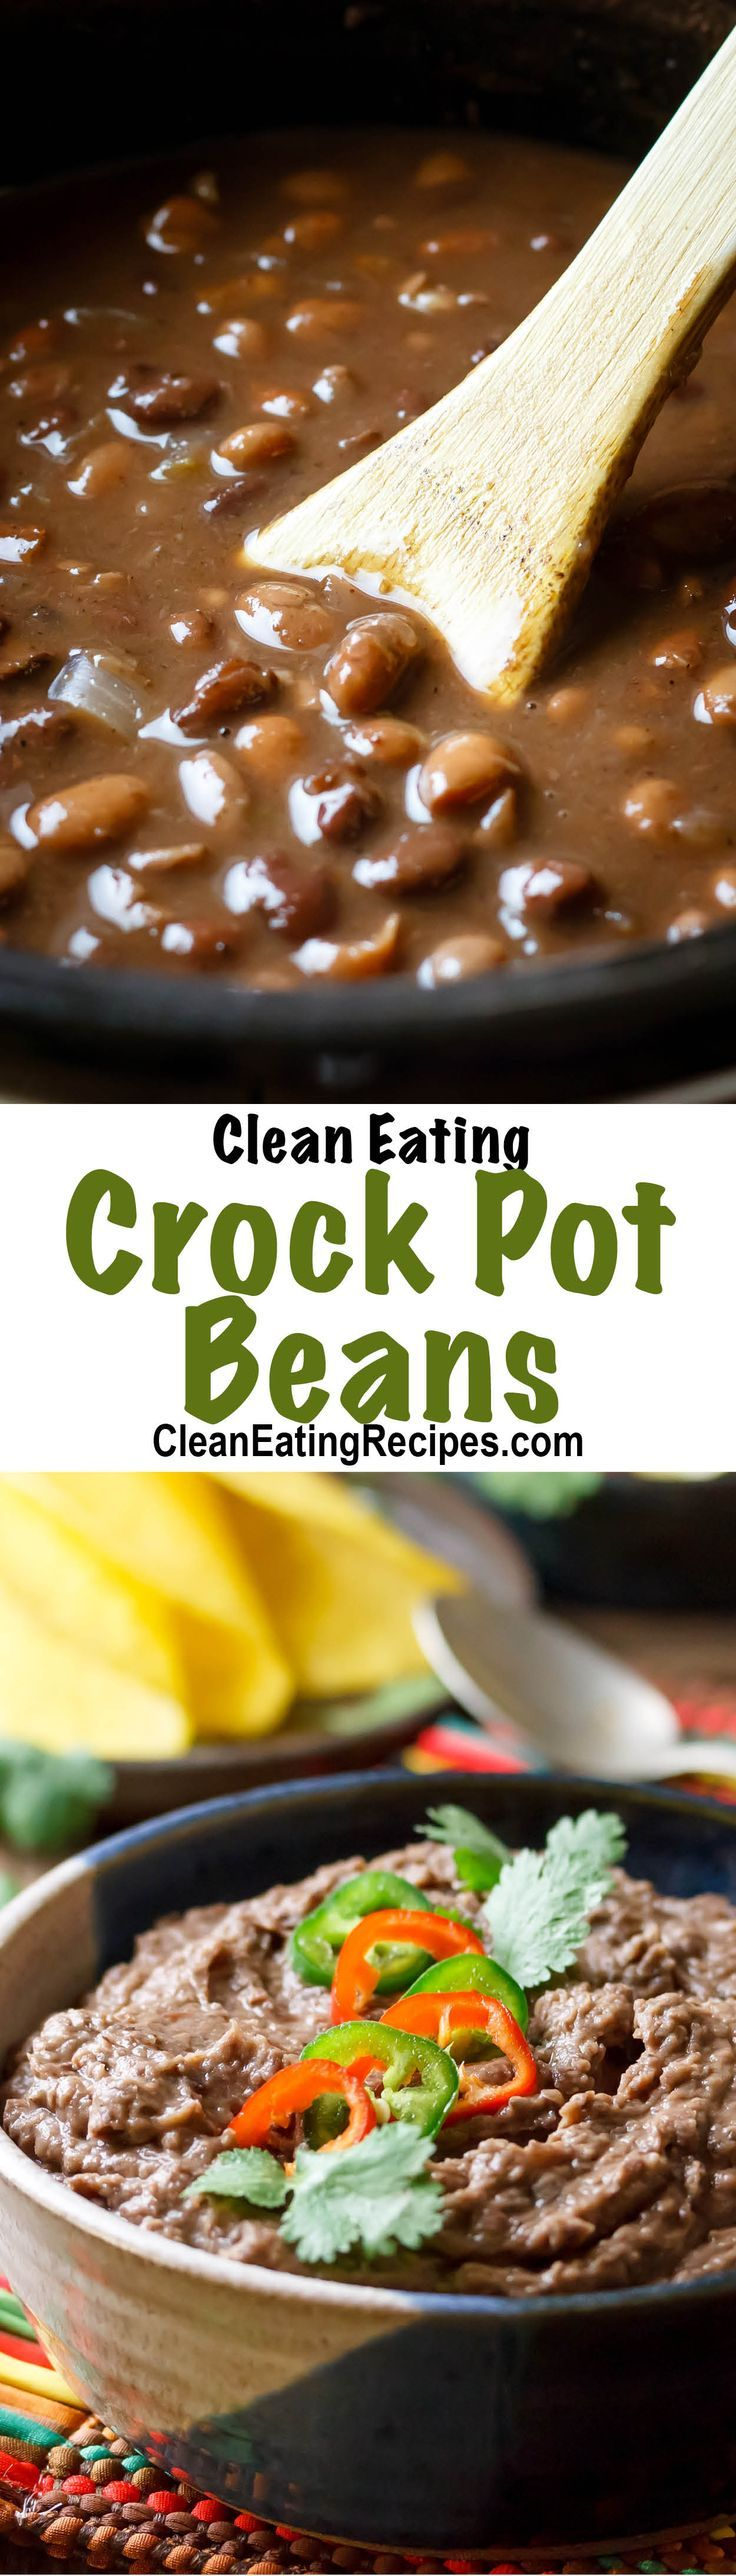 "These are insanely easy to make and taste tons better than canned beans. I love to make a big batch of whatever kind of bean I am in the mood for and then freeze them in individual portions to eat later. I ""refry"" them after I unthaw them, so I can use the beans whole if I want."